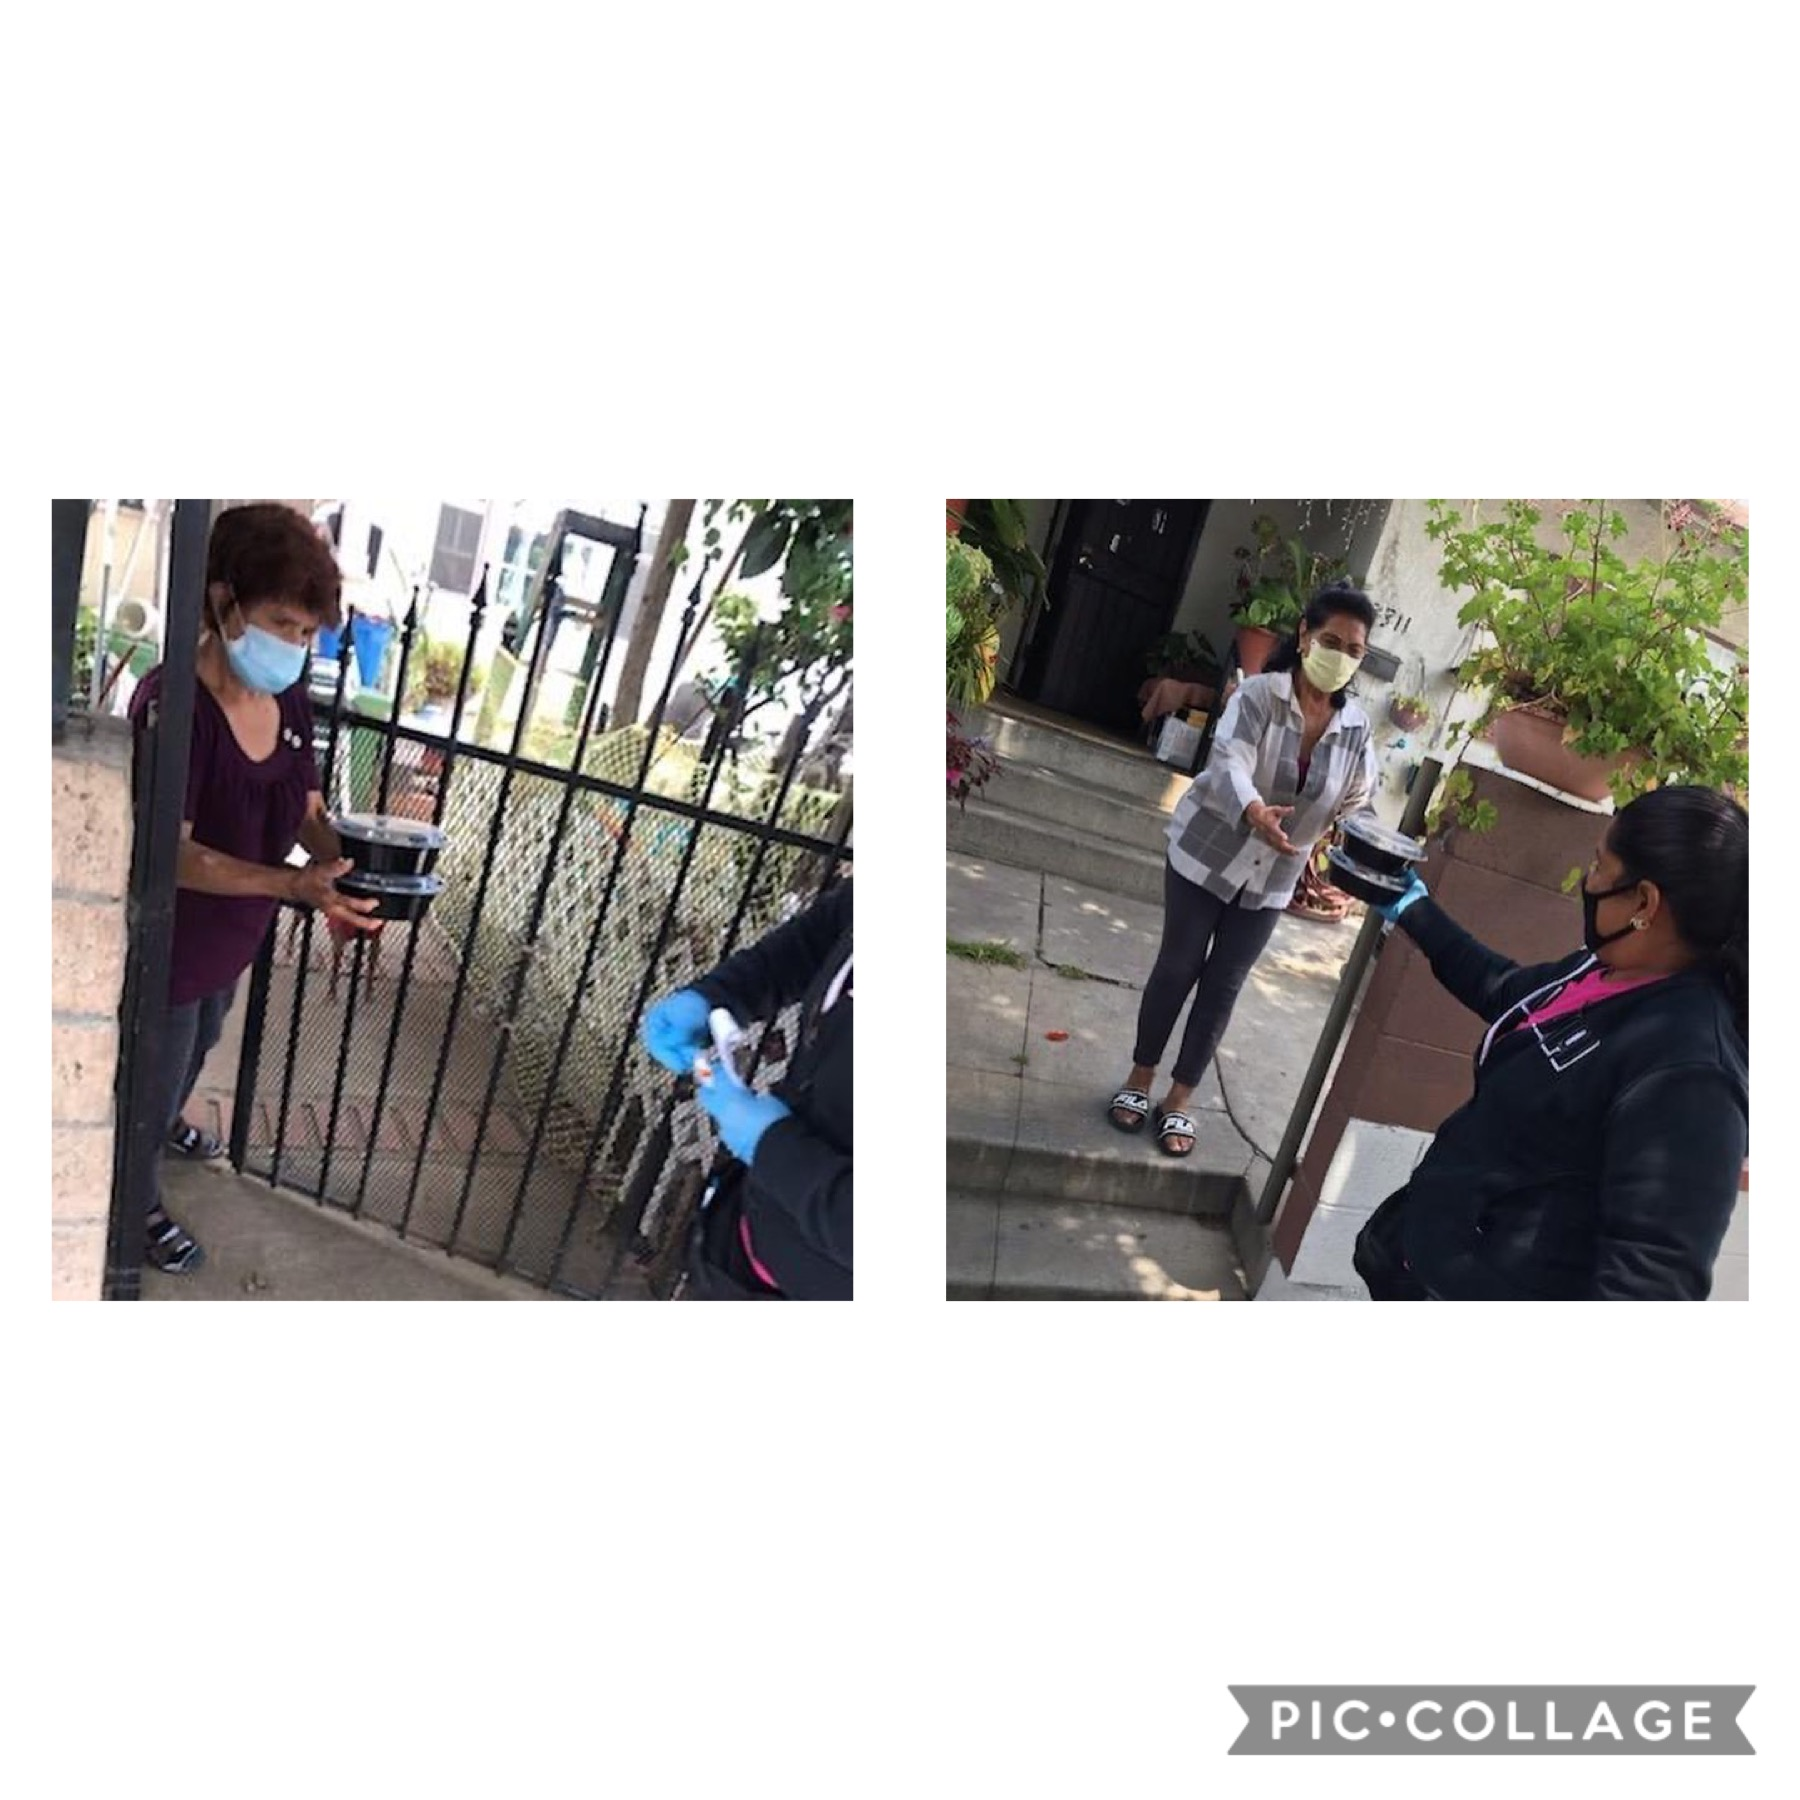 Accion Comunitaria and Tierra Caliente Restaurant, delivered dozens of hot meals to seniors in Cypress Park 5-20-2020 COLLAGE